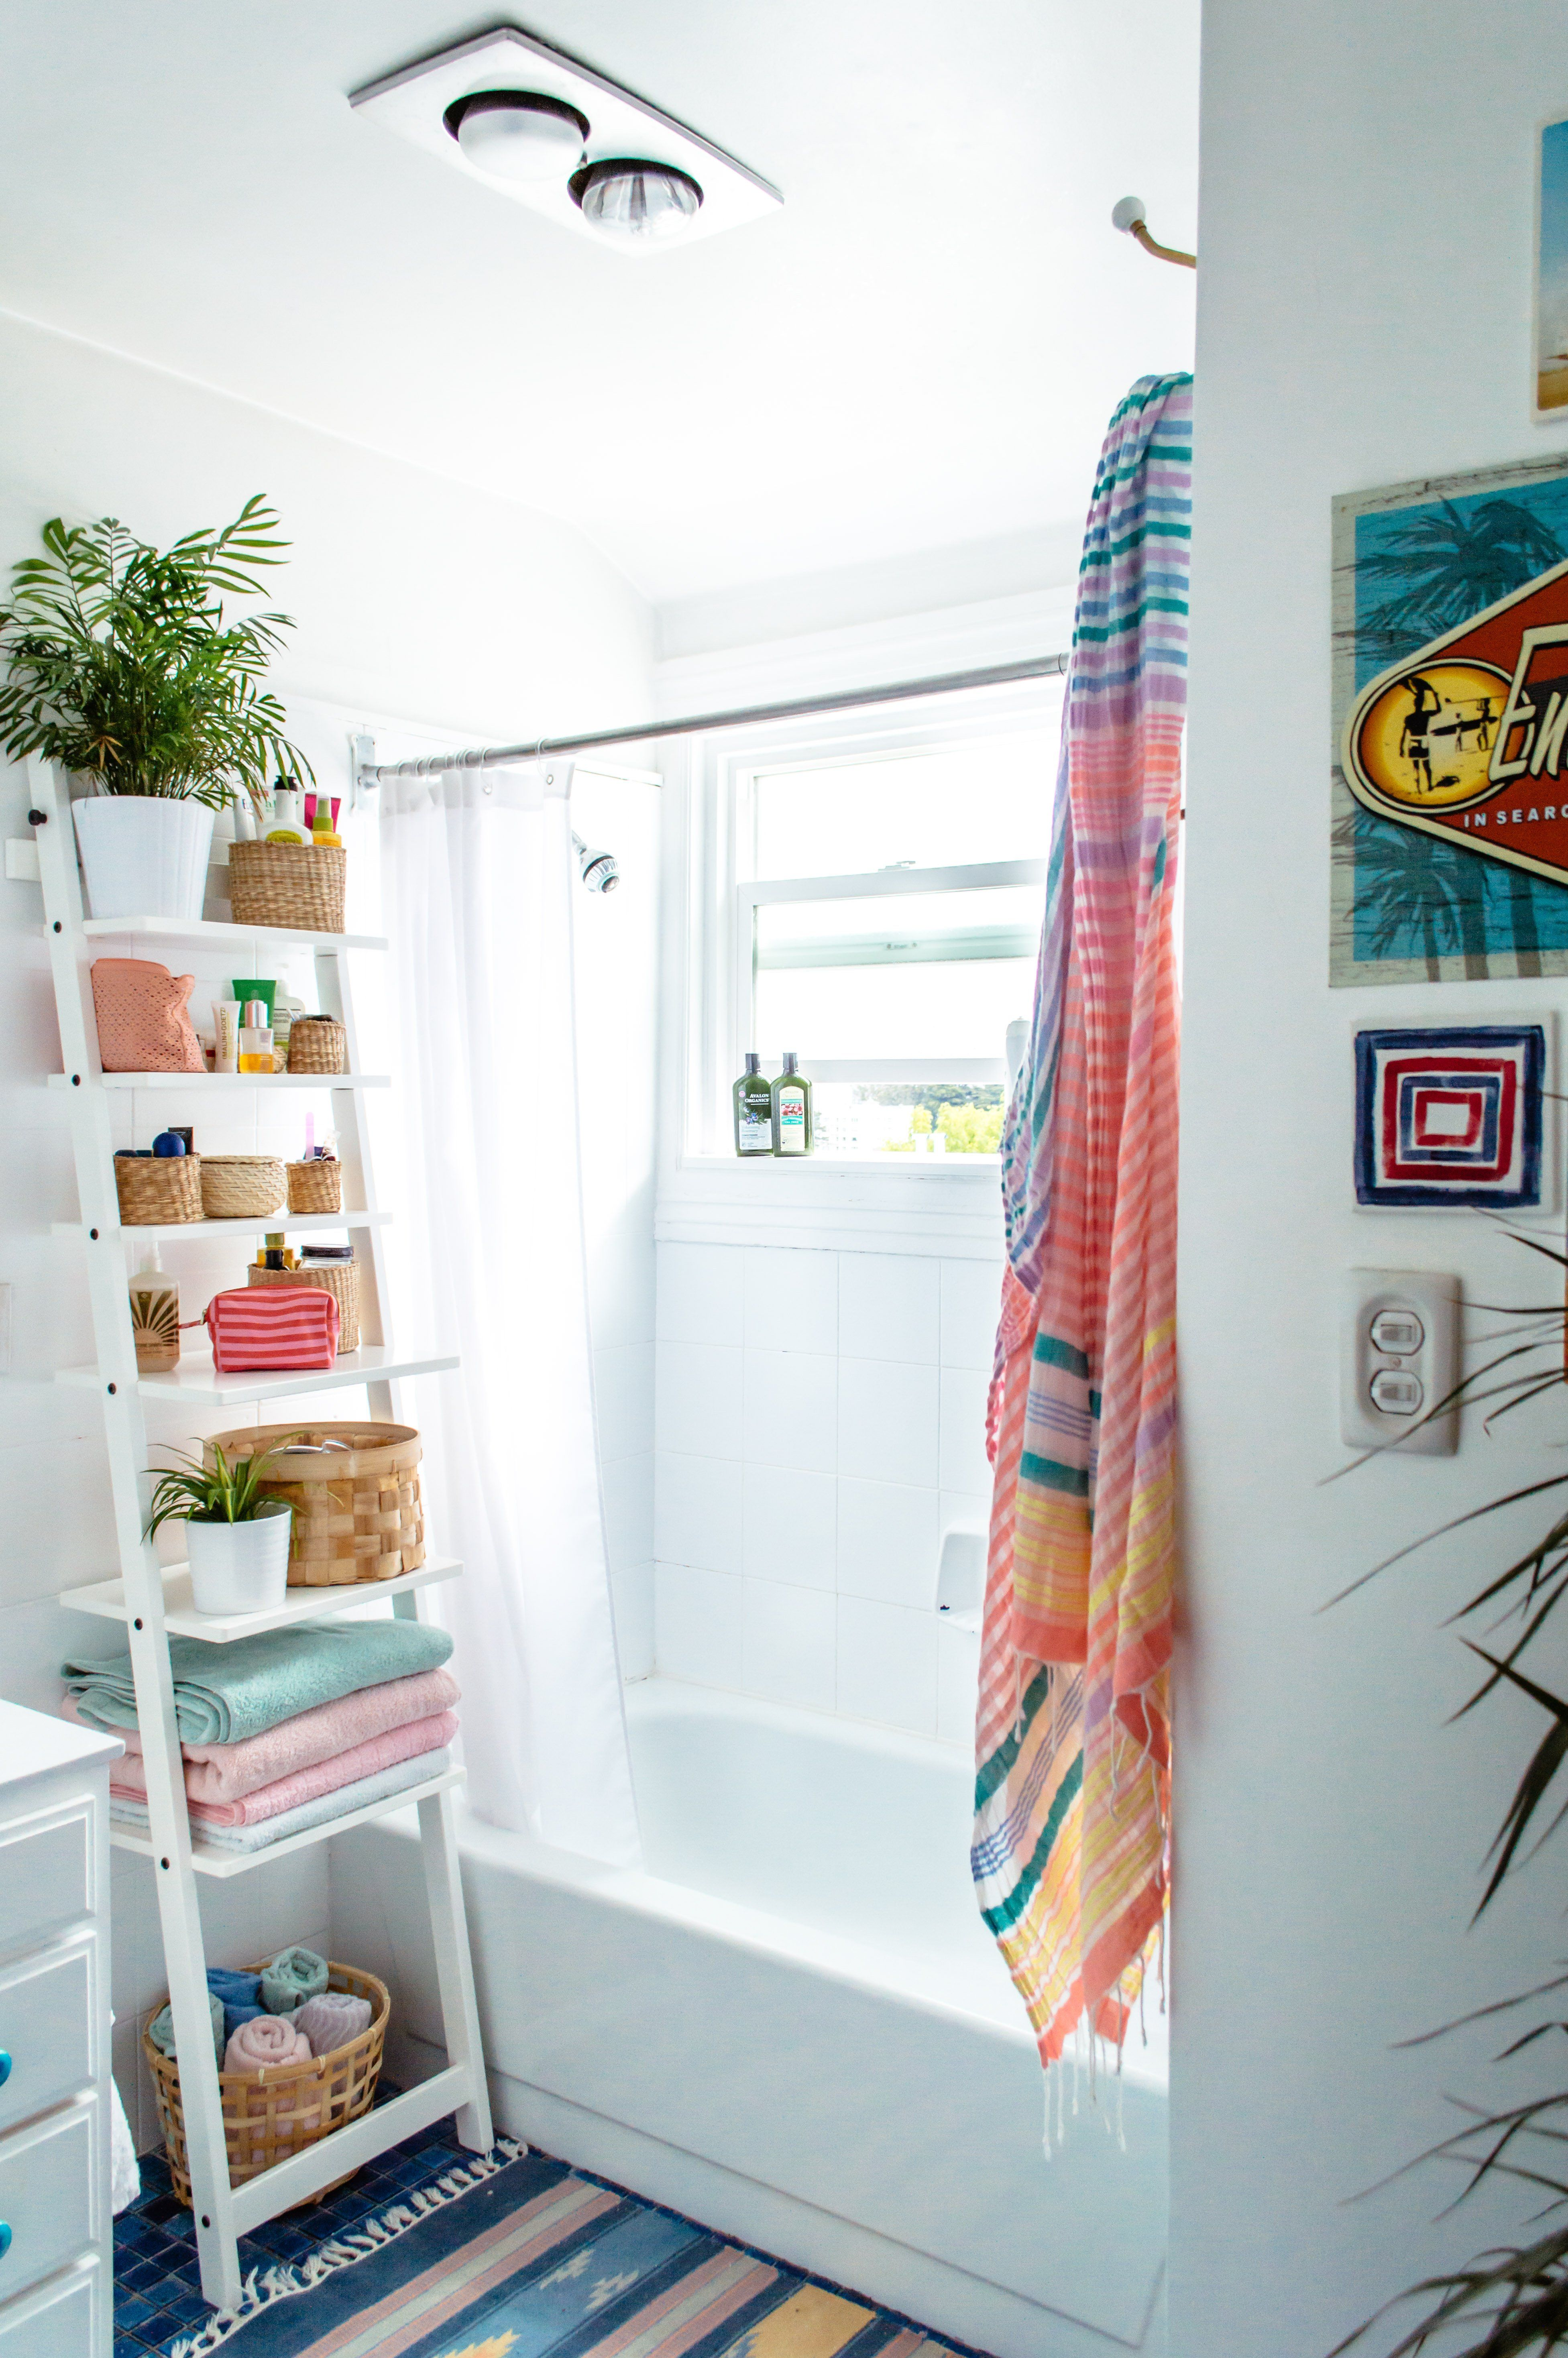 7 Clever Ways to Add Storage to a Small Bathroom | JoAnn Samuel ...